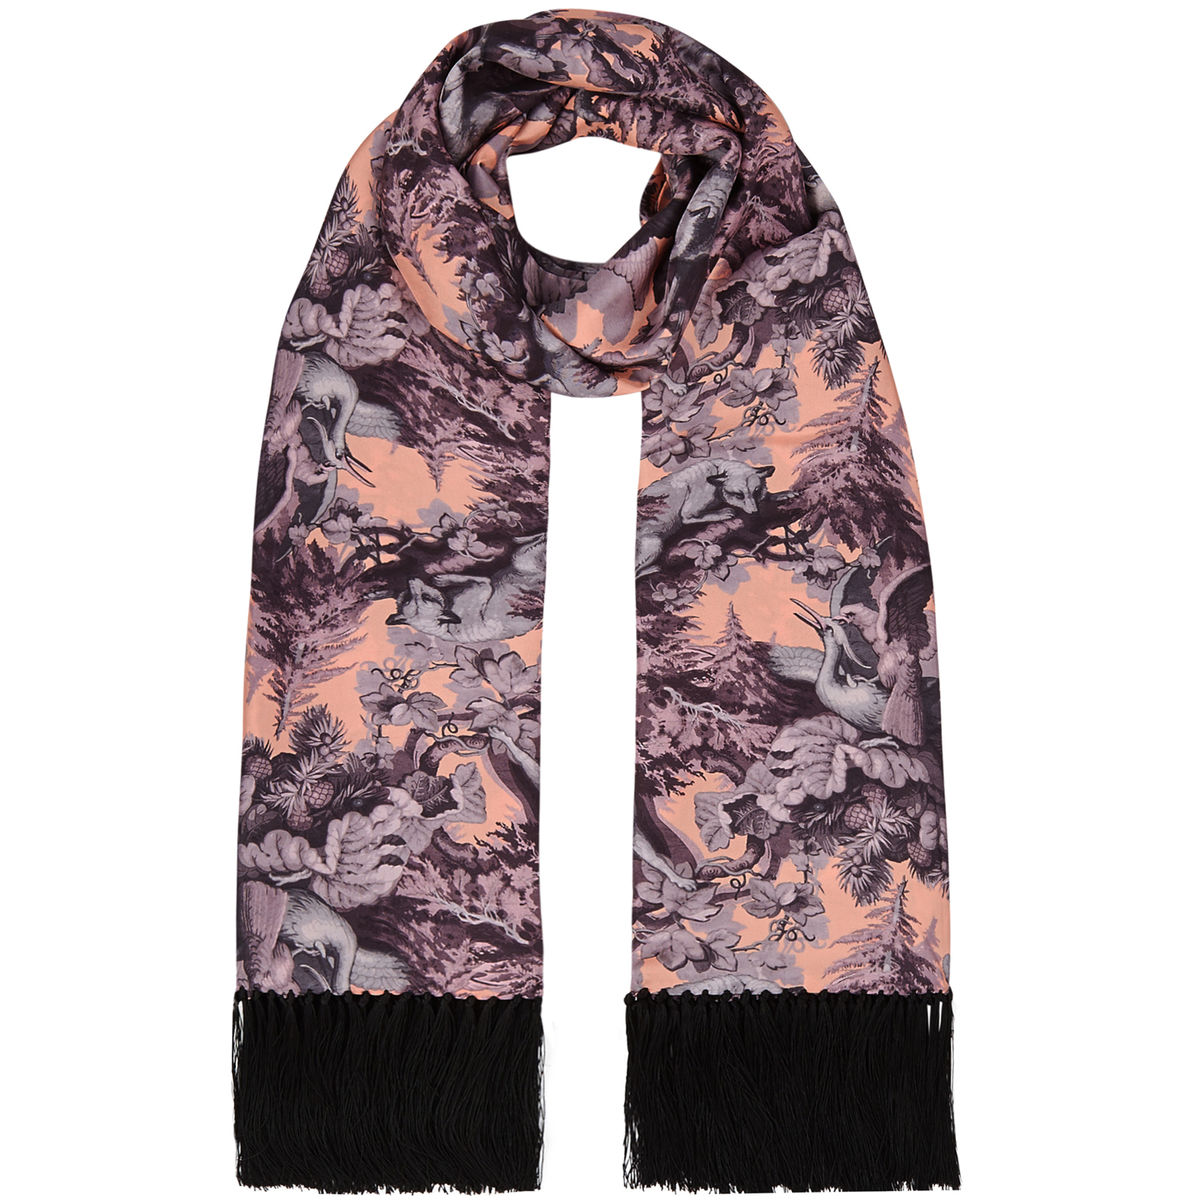 Delores hand Tasselled silk twill scarf in Białowieża Forest print (iced lilac) - product images  of